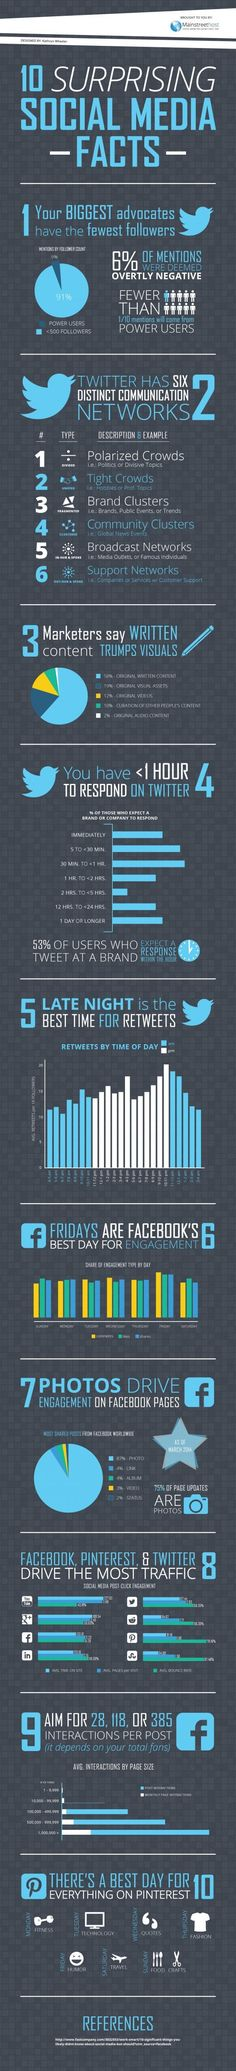 10 surprising Social Media facts...